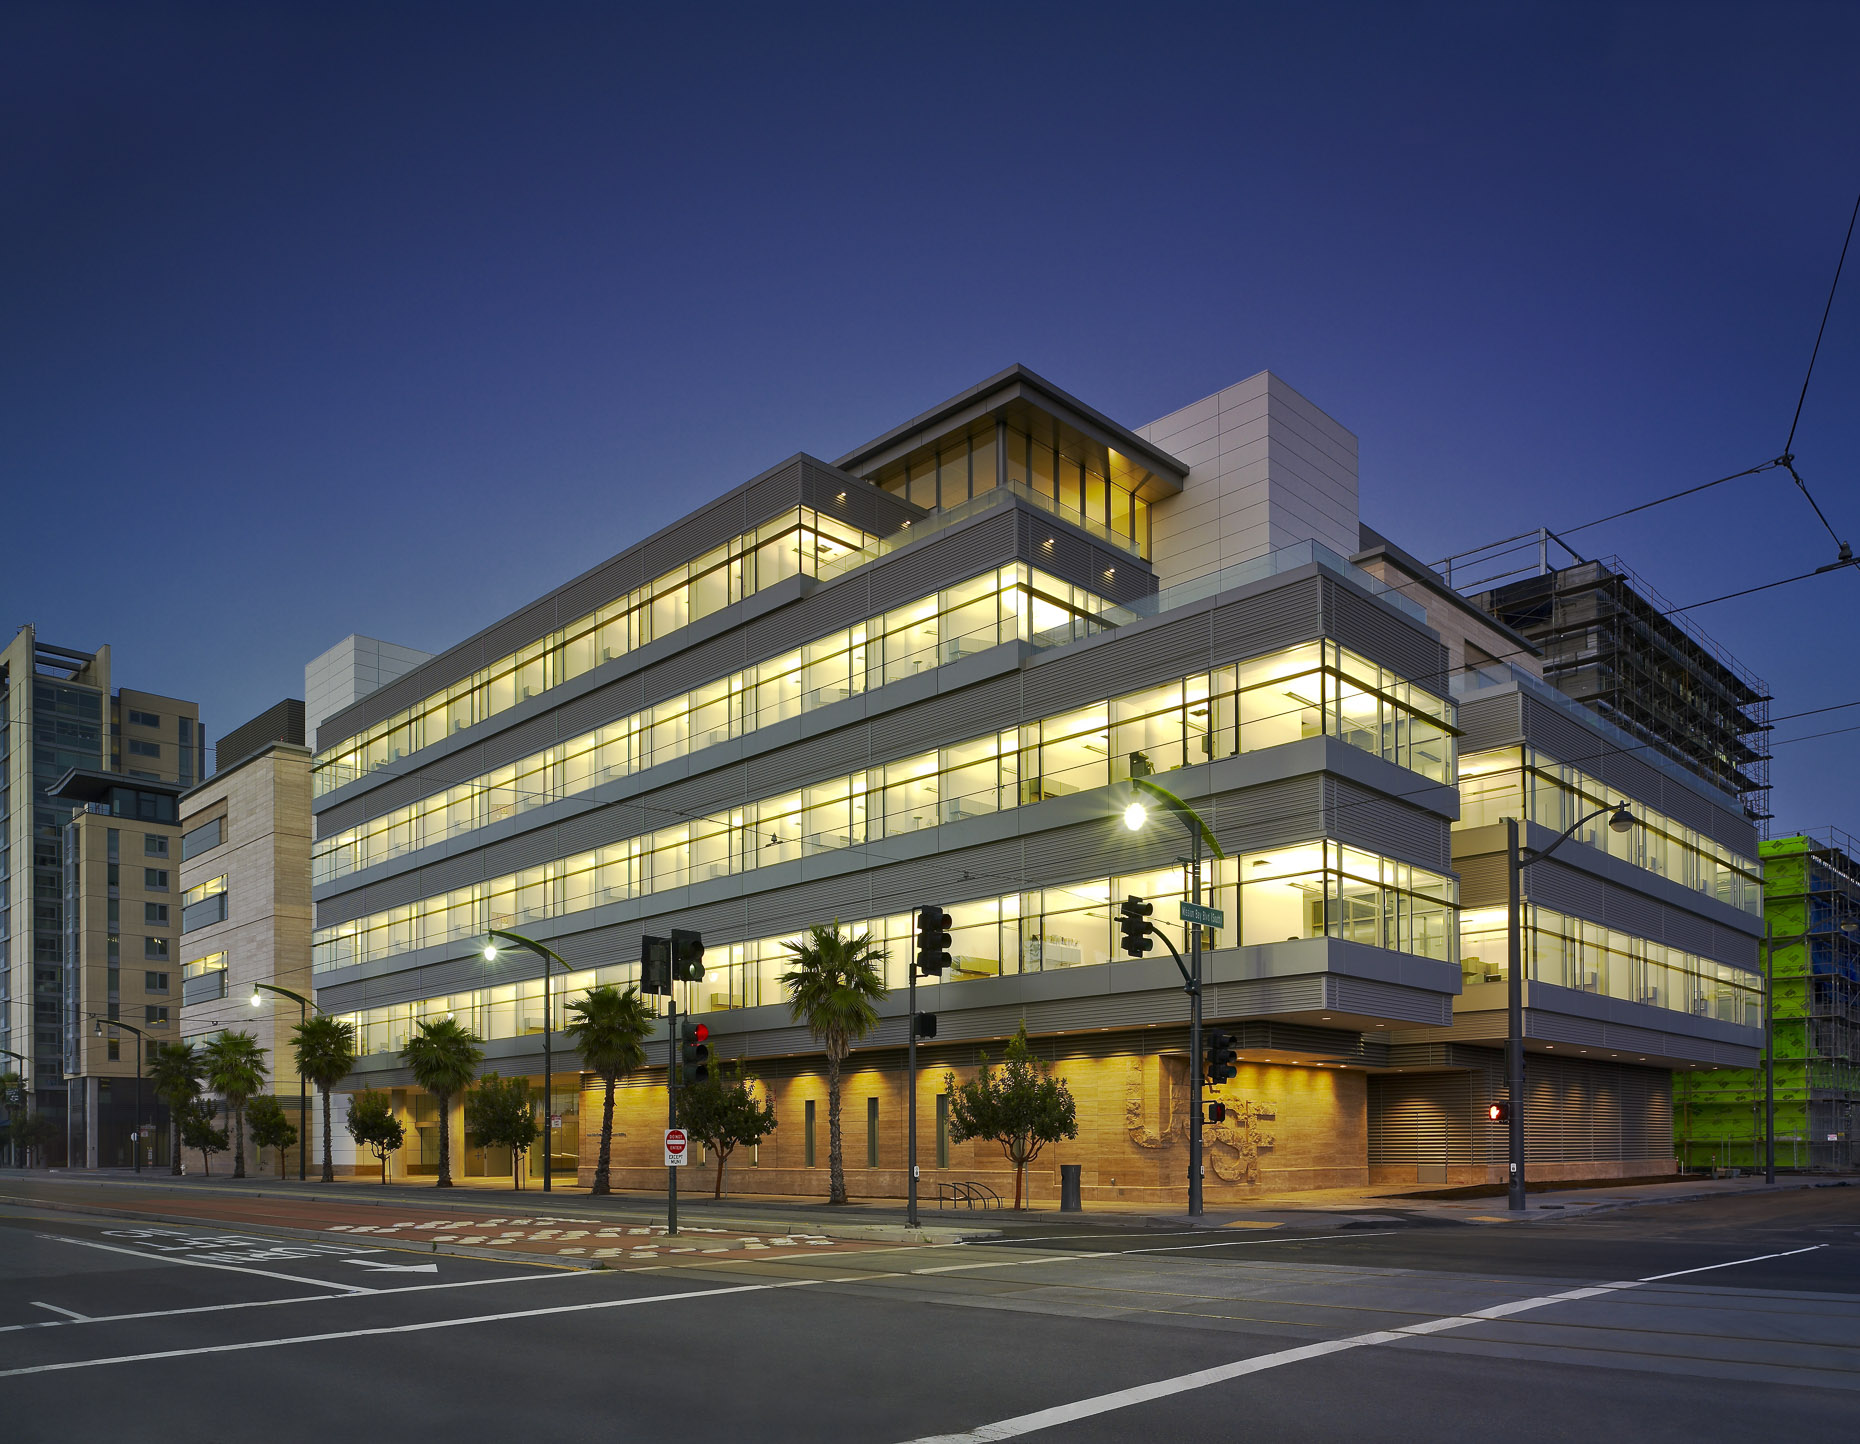 University of California San Francisco Helen Diller Family Cancer Research Facility by Rafael Viñoly Architects photographed by Brad Feinknopf based in Columbus, Ohio